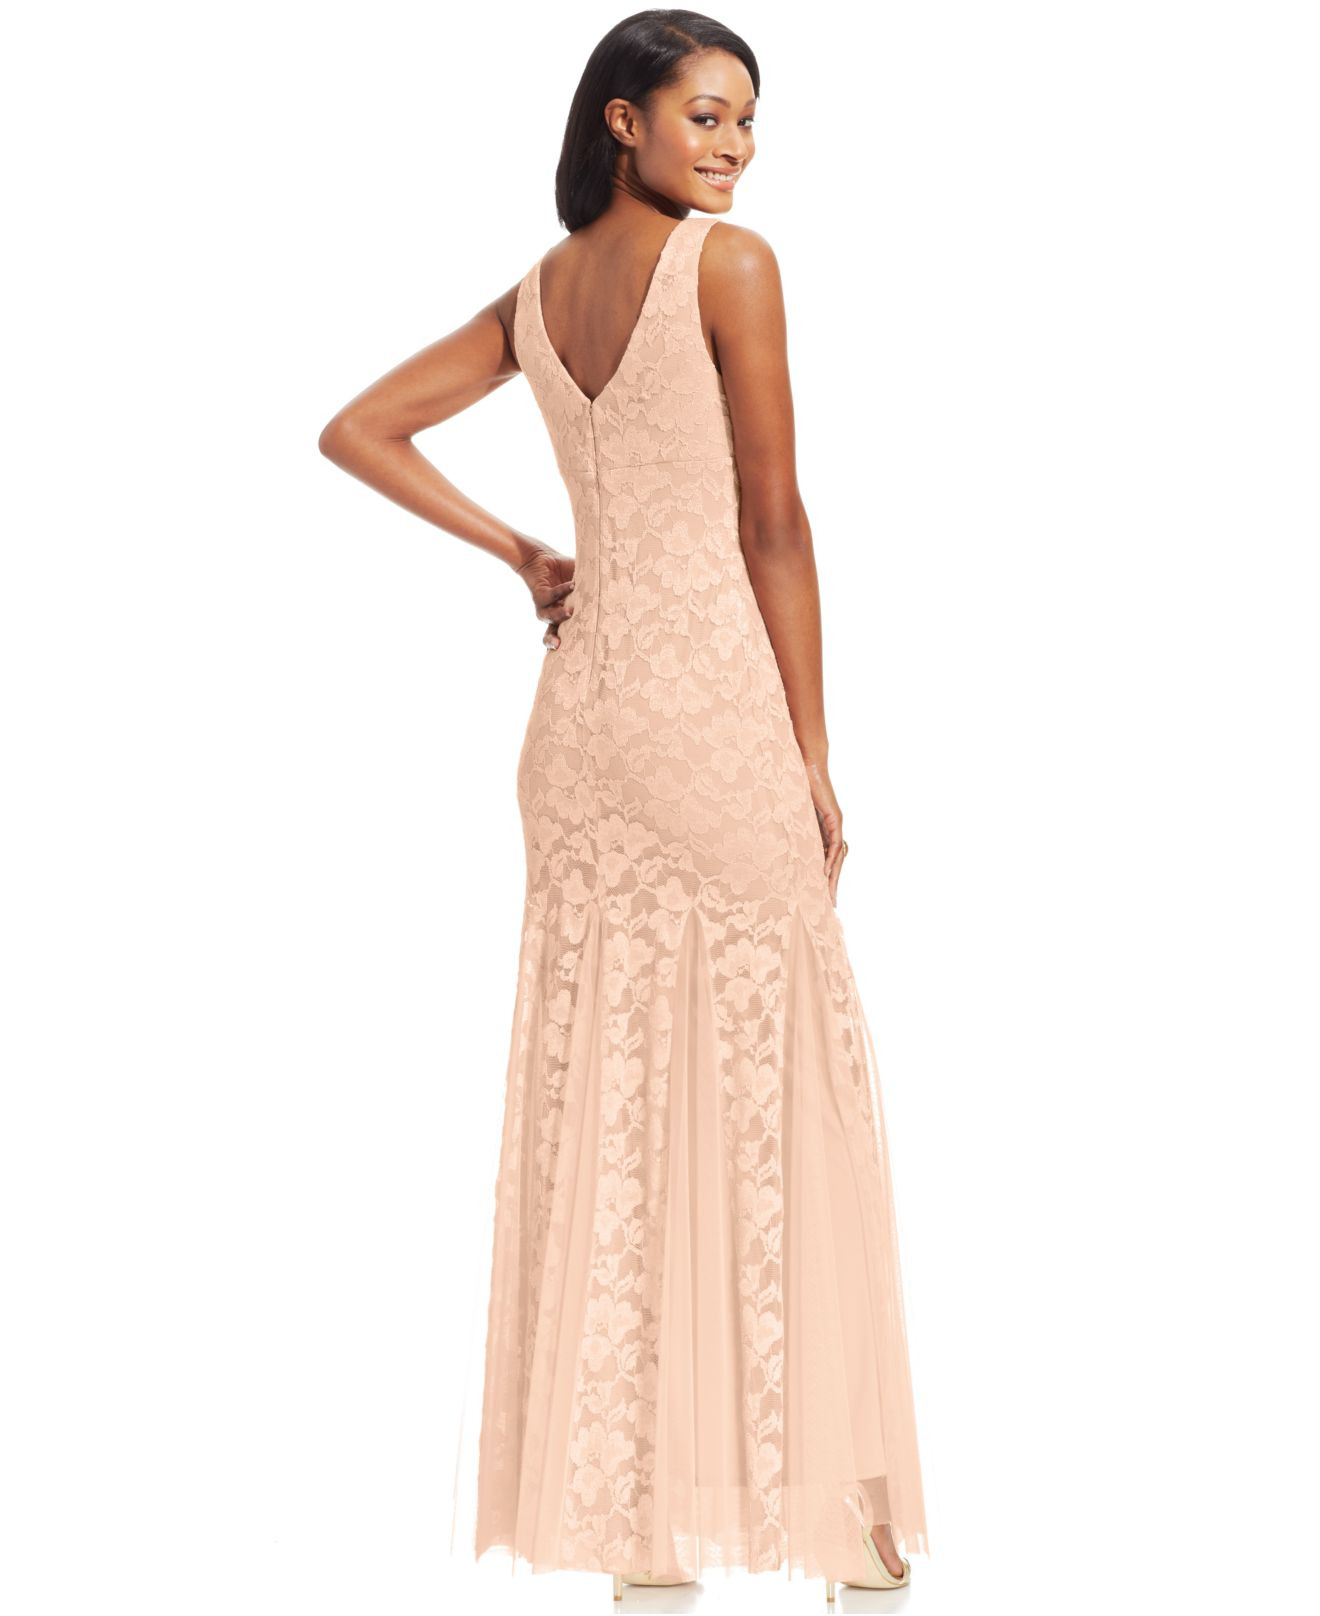 Lyst - Xscape Sleeveless Lace Mermaid Gown in Natural